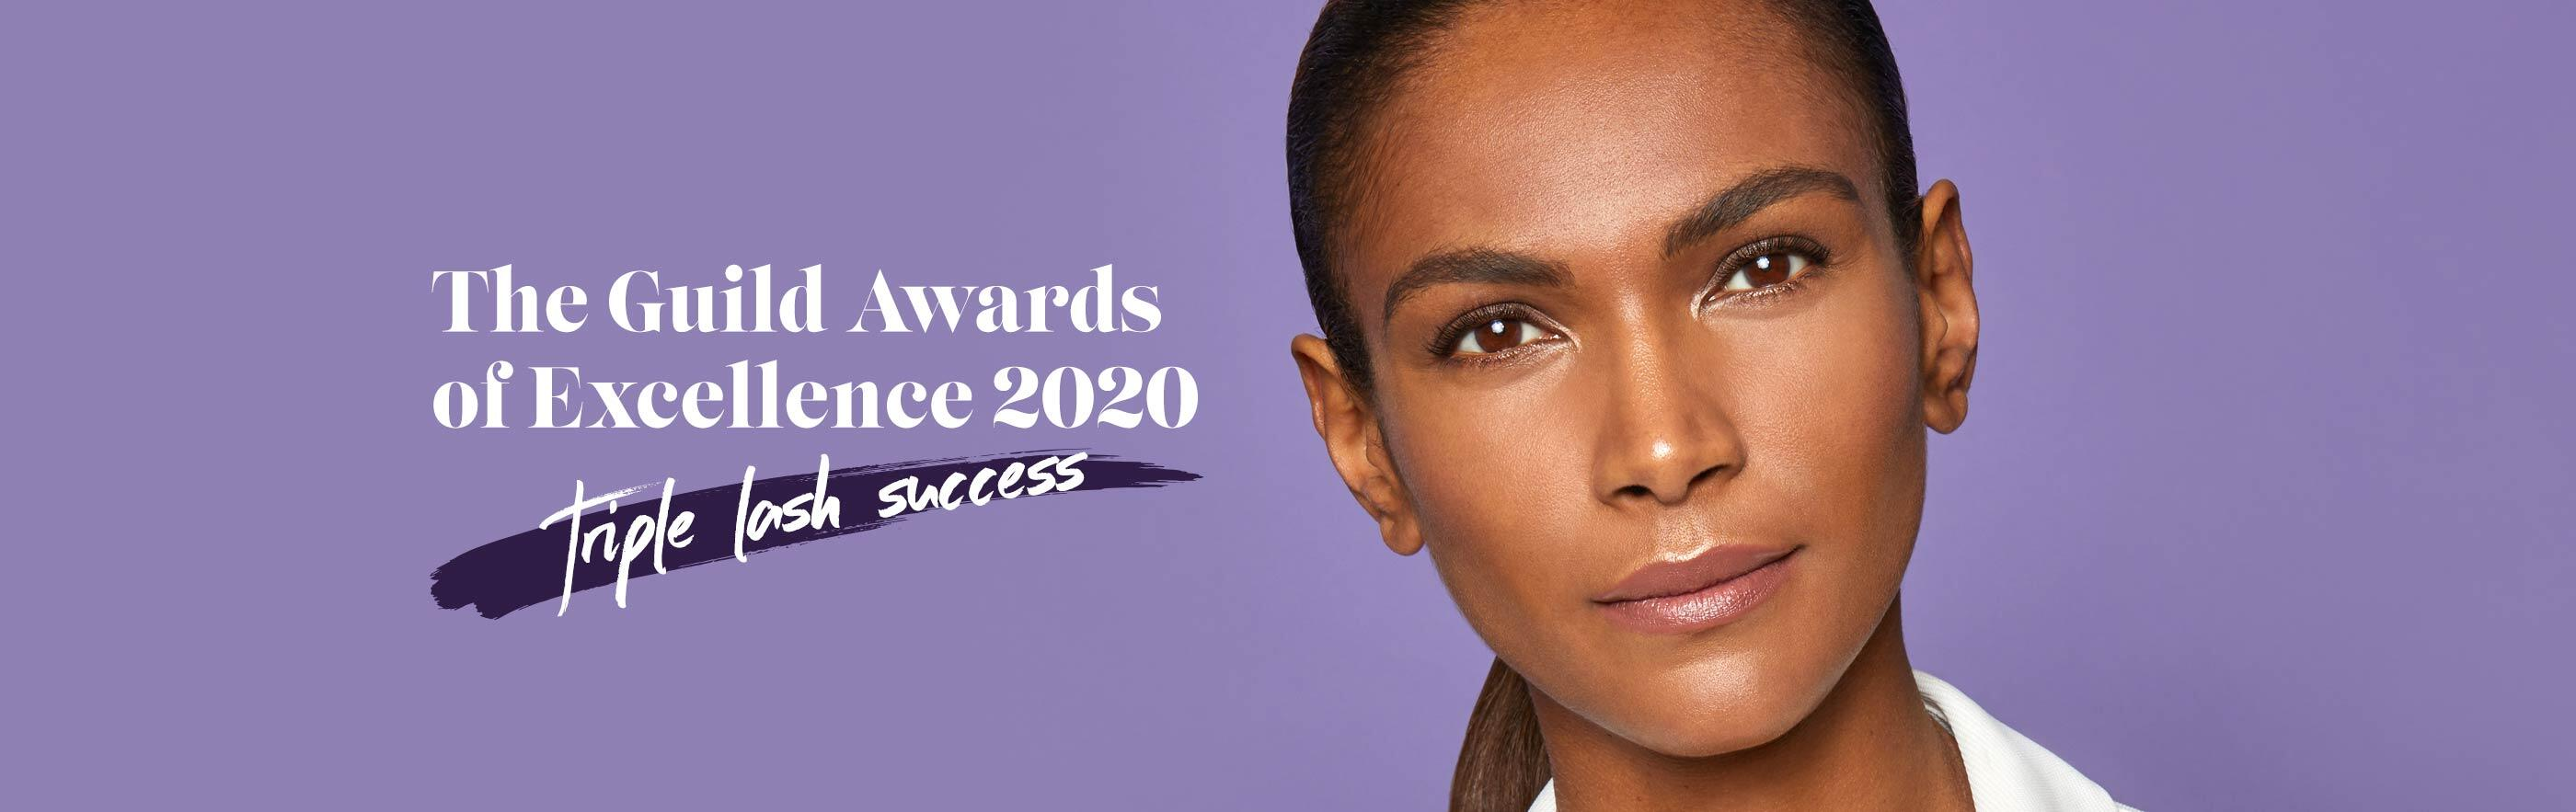 The Guild Awards of Excellence 2020: Triple Lash Success